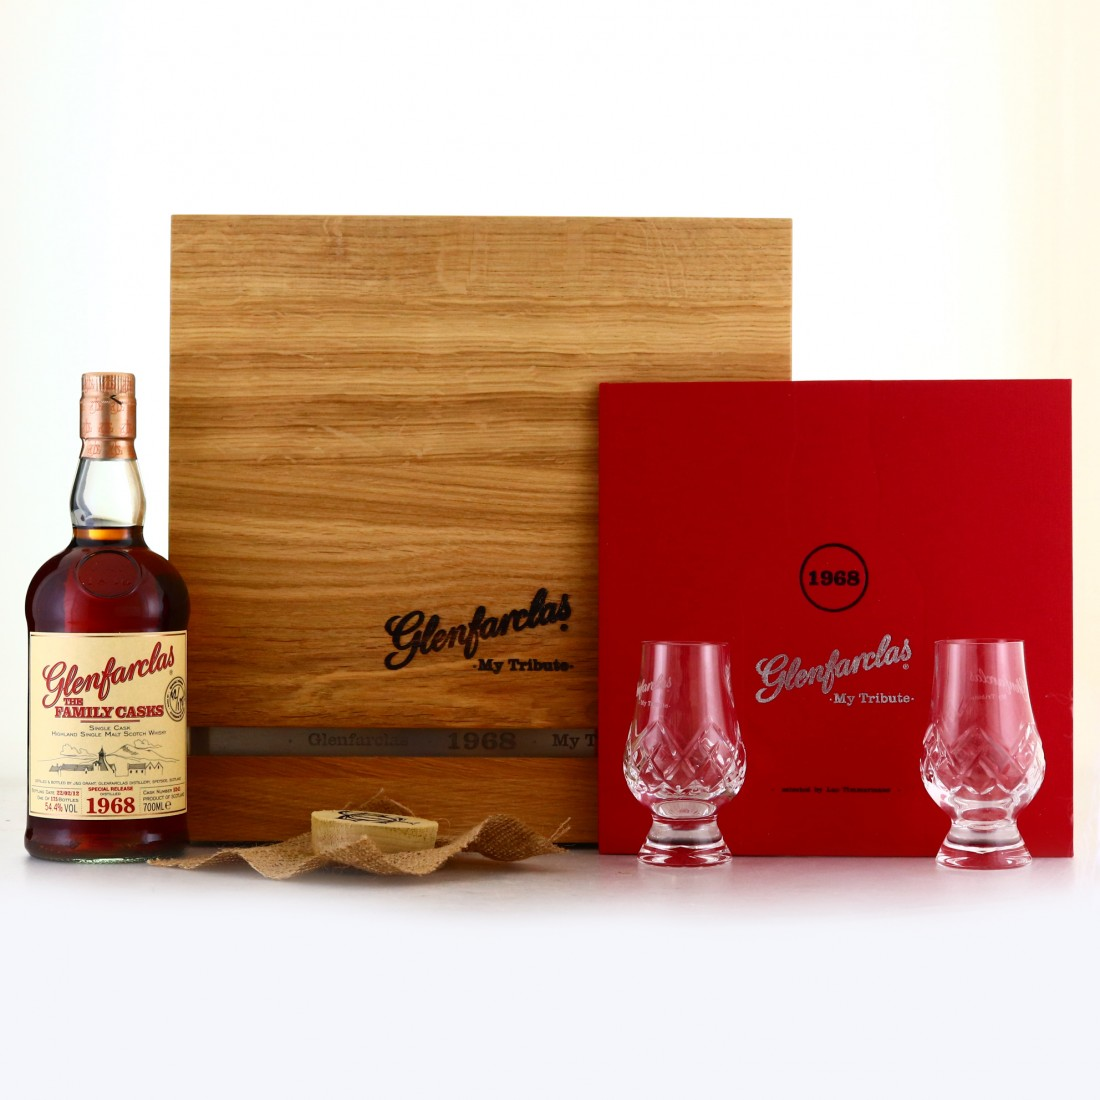 Glenfarclas 1968 Family Cask #5421 / My Tribute - Selected by Luc Timmermans